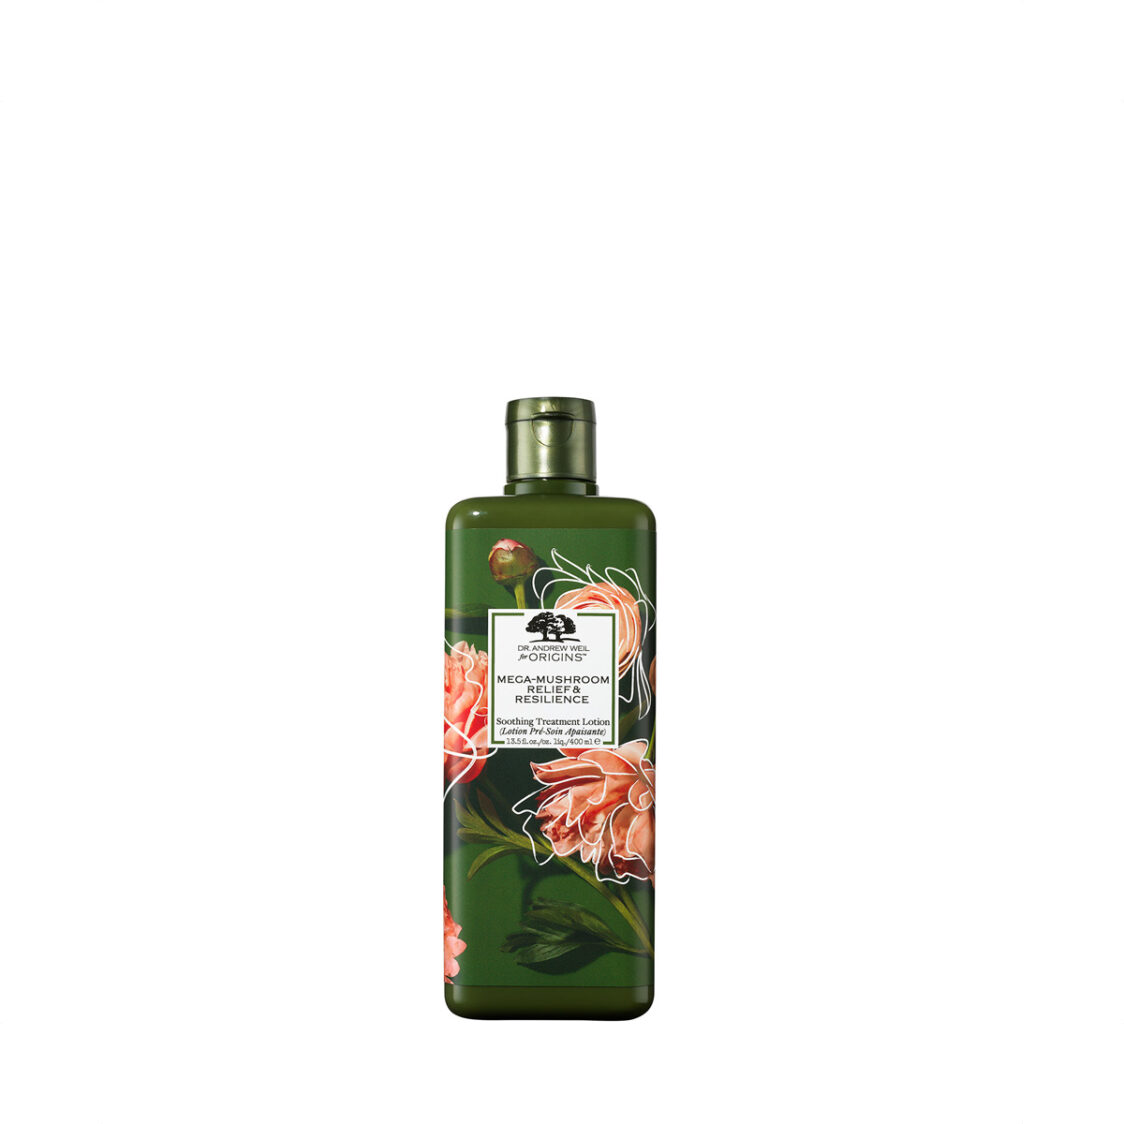 Dr Andrew Weil For Origins Mega-Mushroom Relief  Resilience Soothing Treatment Lotion Earth Month Limited Edition 400ml